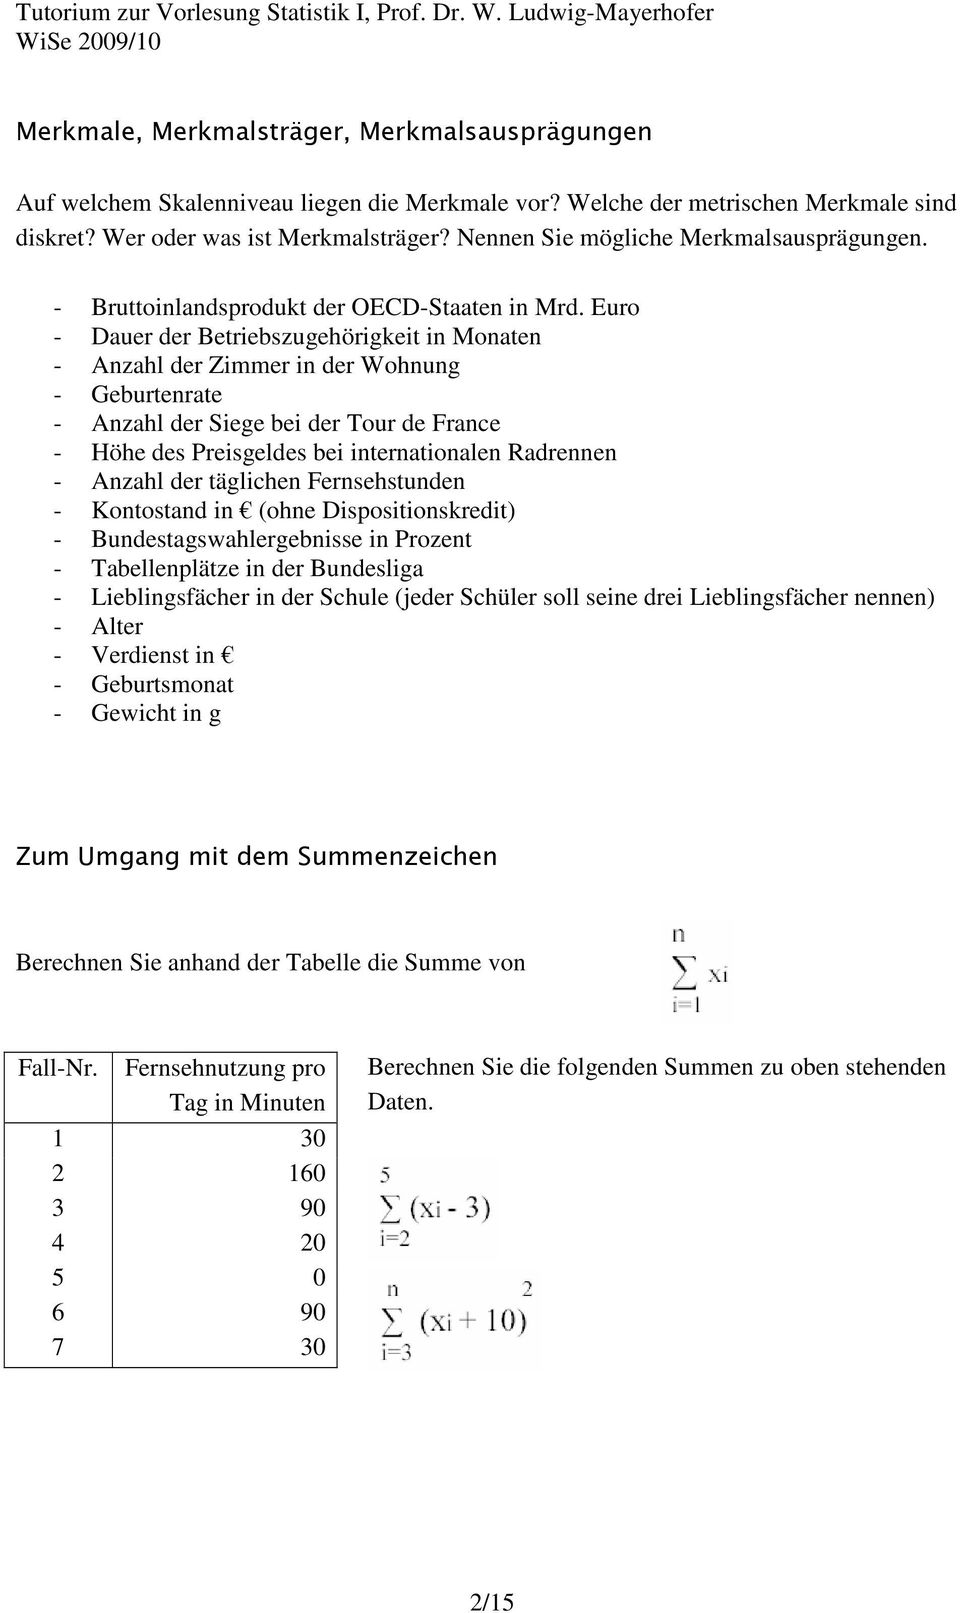 tutorium zur vorlesung statistik i prof dr w ludwig mayerhofer wise 2009 10. Black Bedroom Furniture Sets. Home Design Ideas